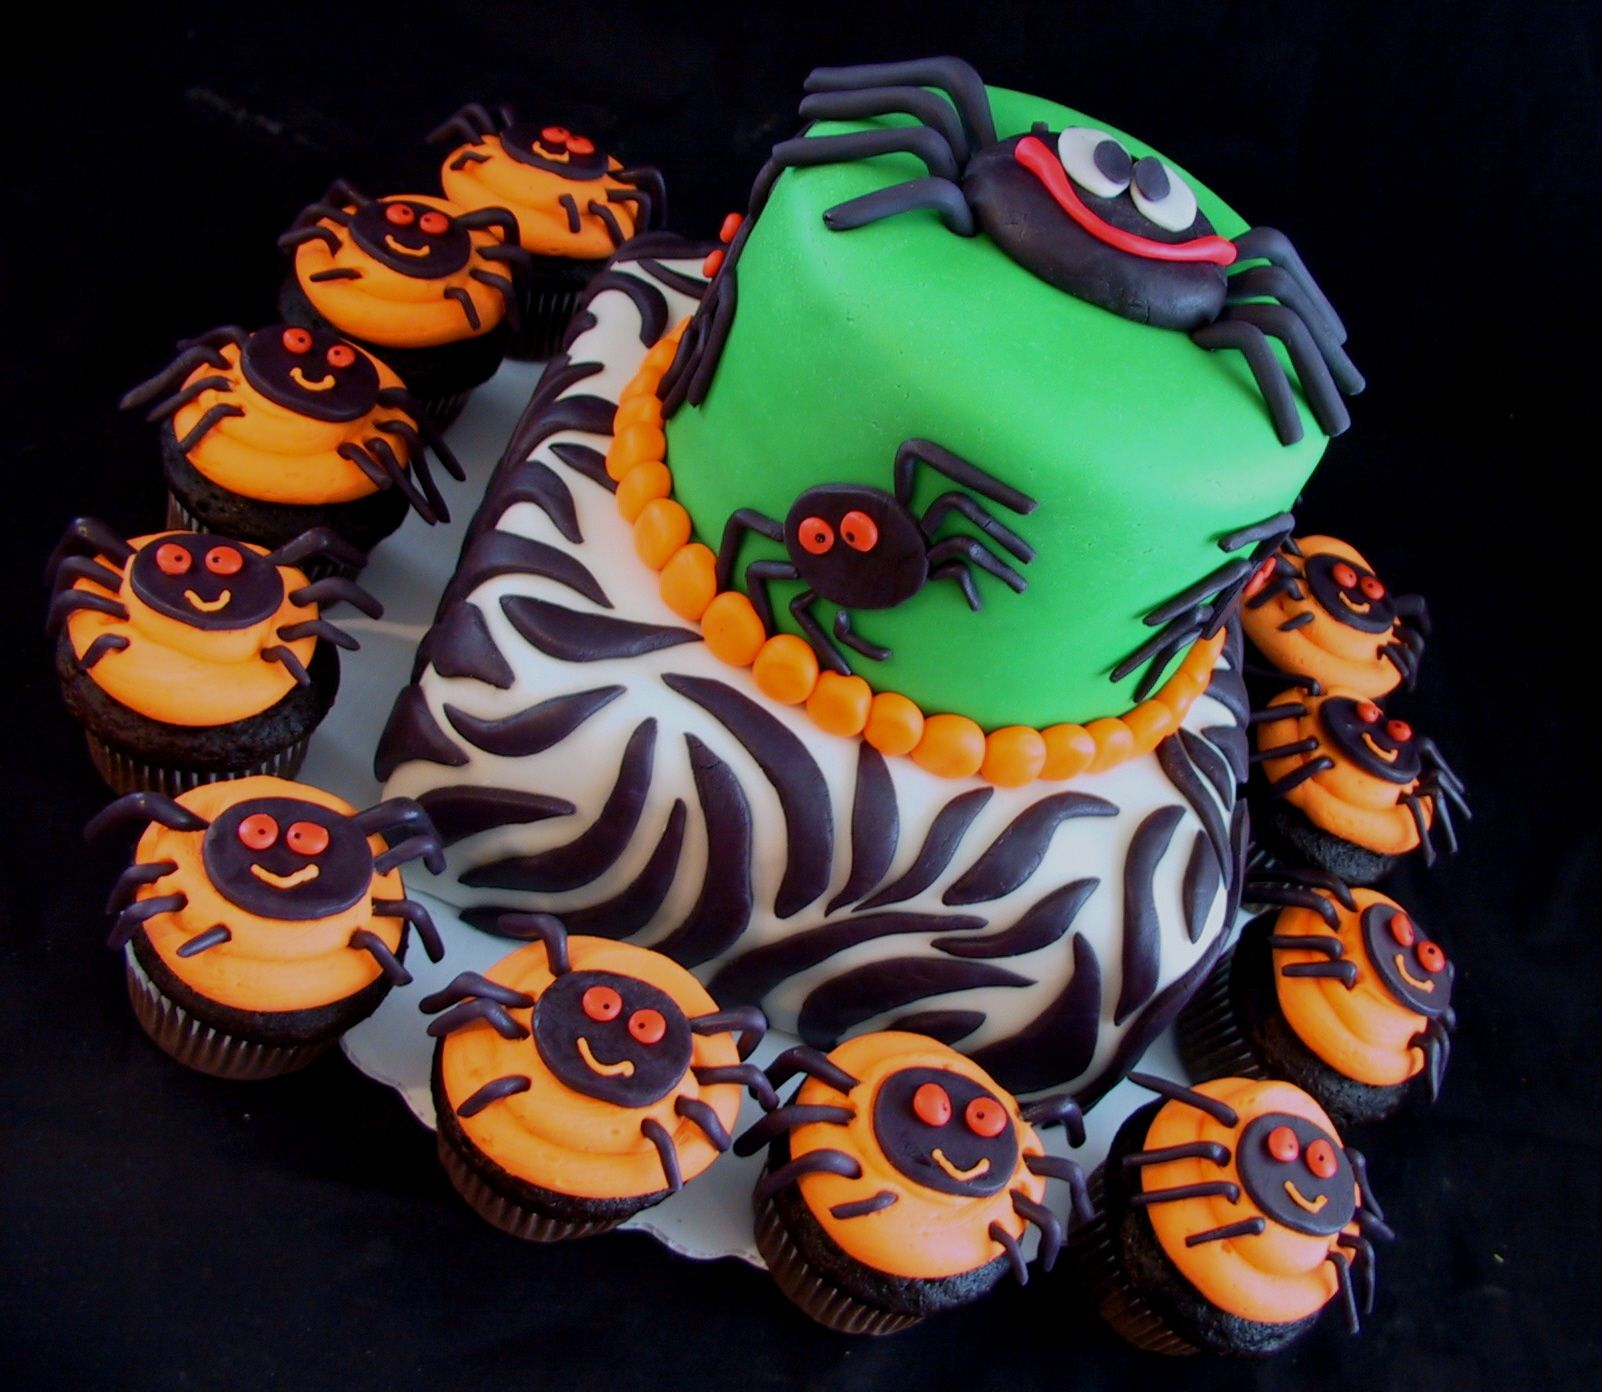 Scary Birthday Cakes Cakes Halloween Sweet 16 Birthday Cake